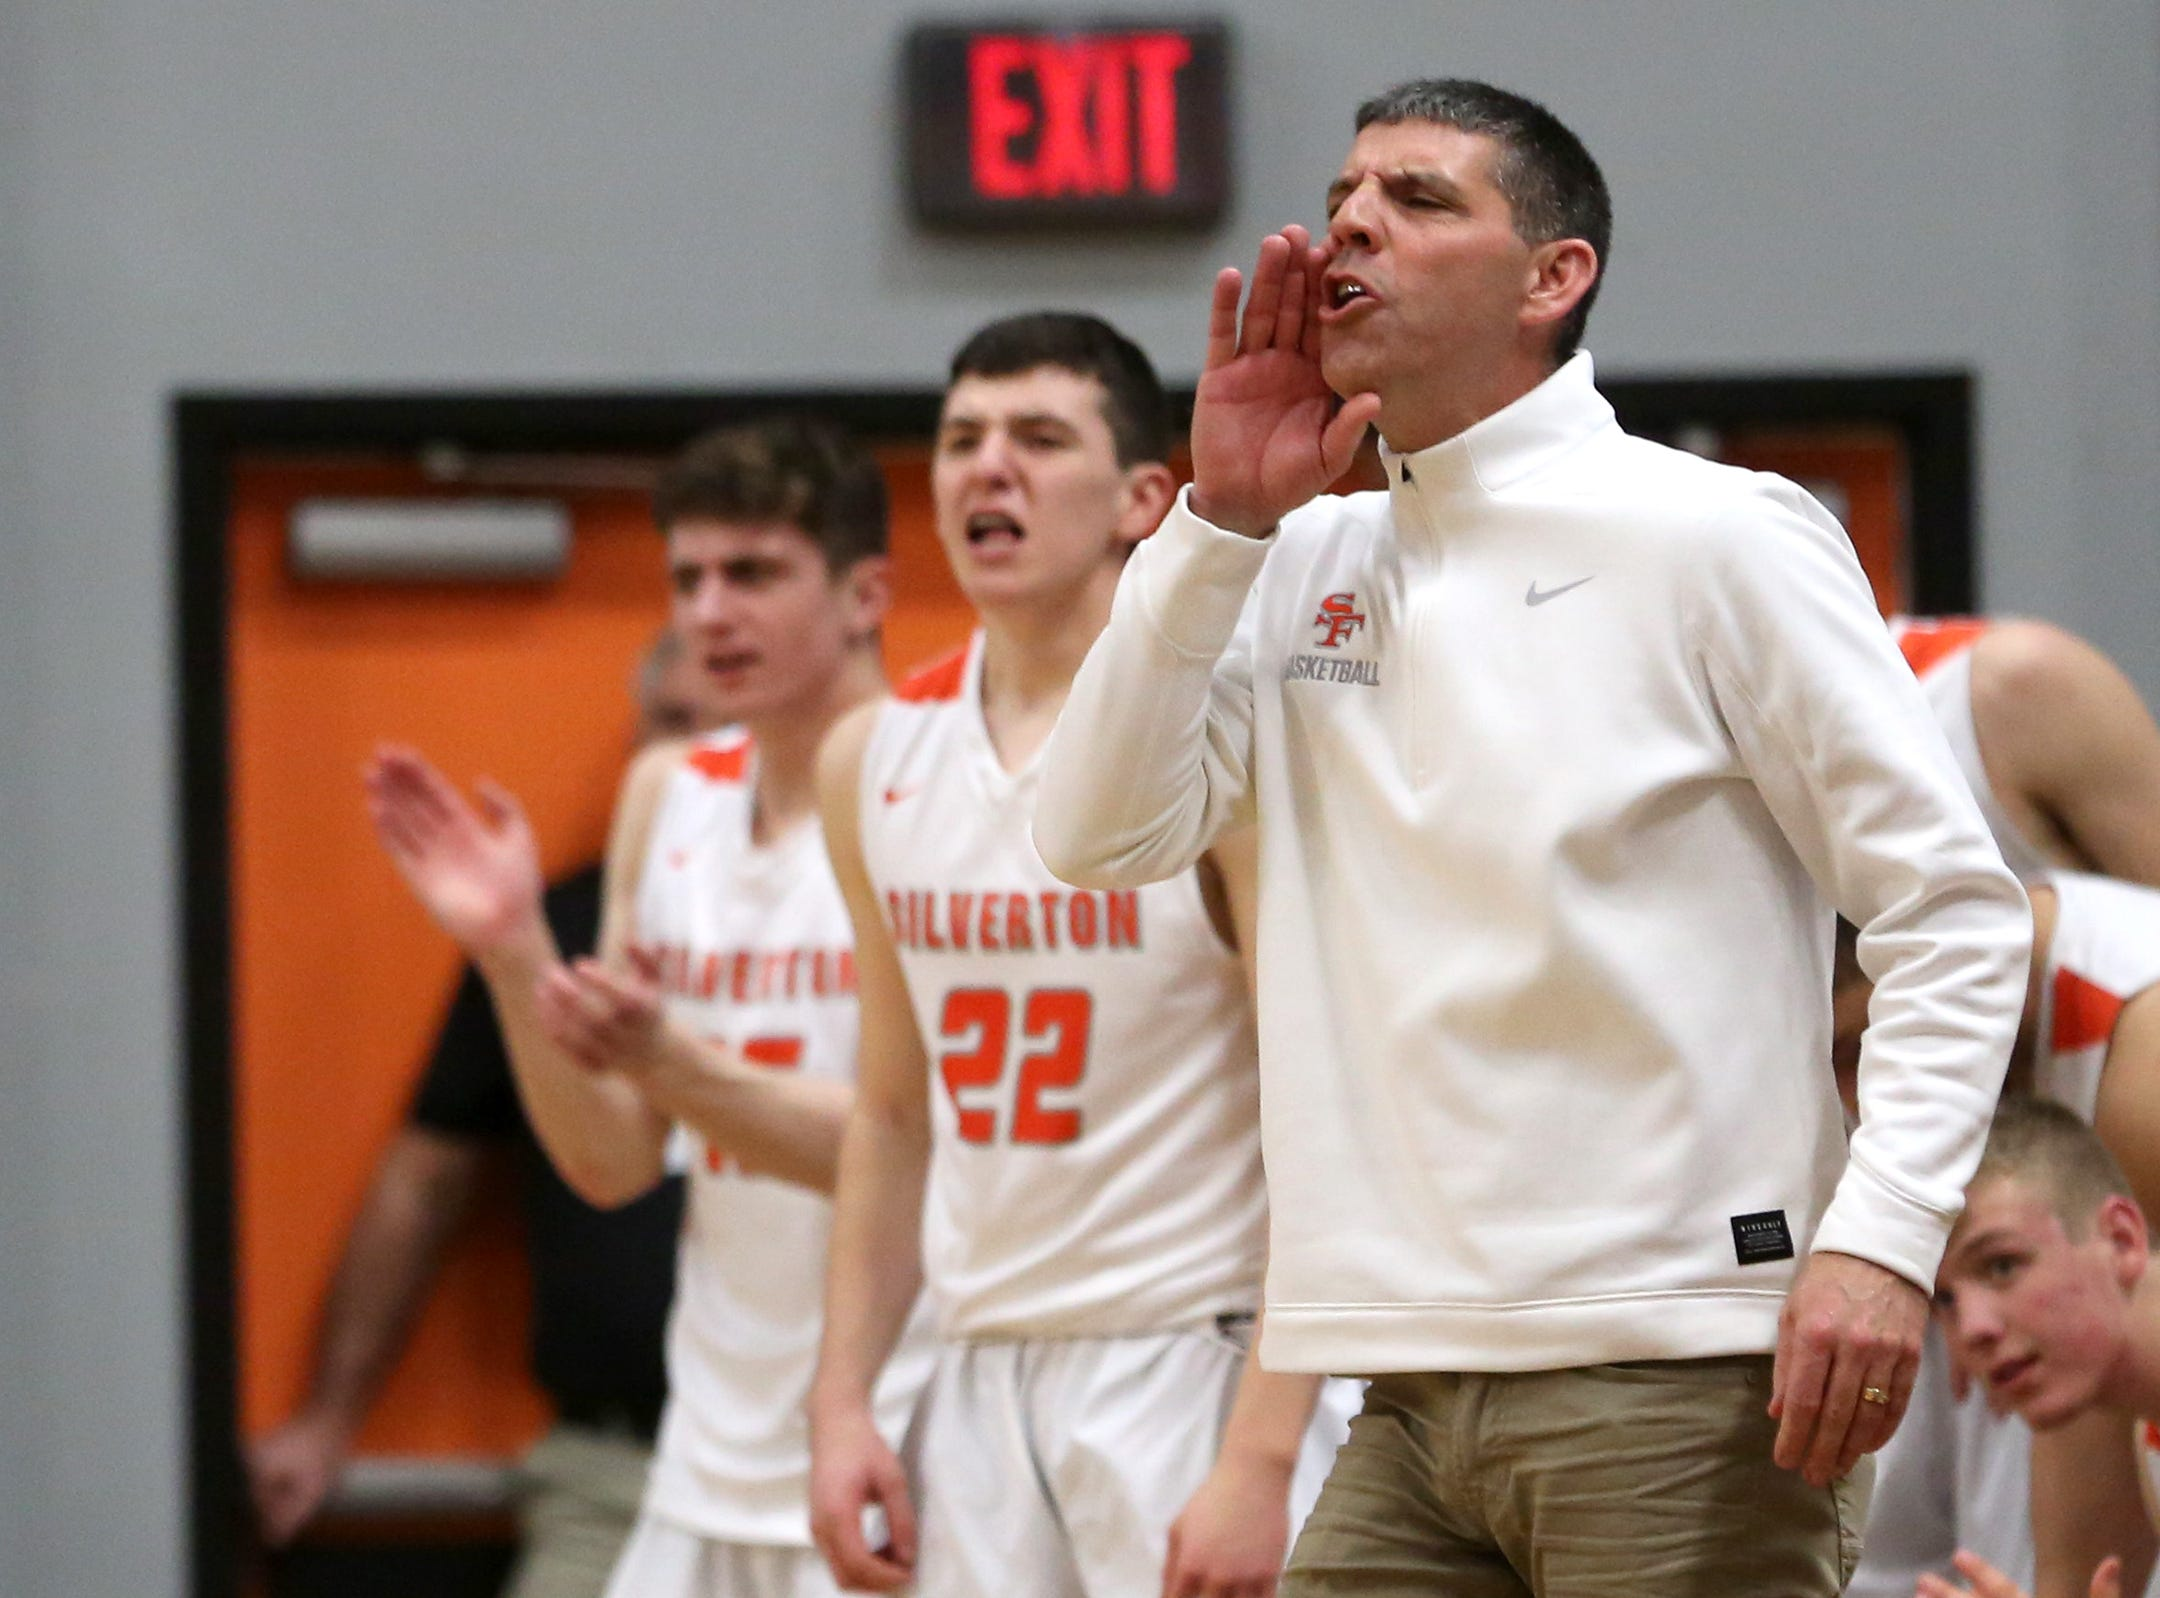 Silverton's head coach Jamie McCarty calls out a play during the Silverton vs. Springfield boys basketball OSAA state playoffs game at Silverton High School in Silverton on Saturday, March 2, 2019.